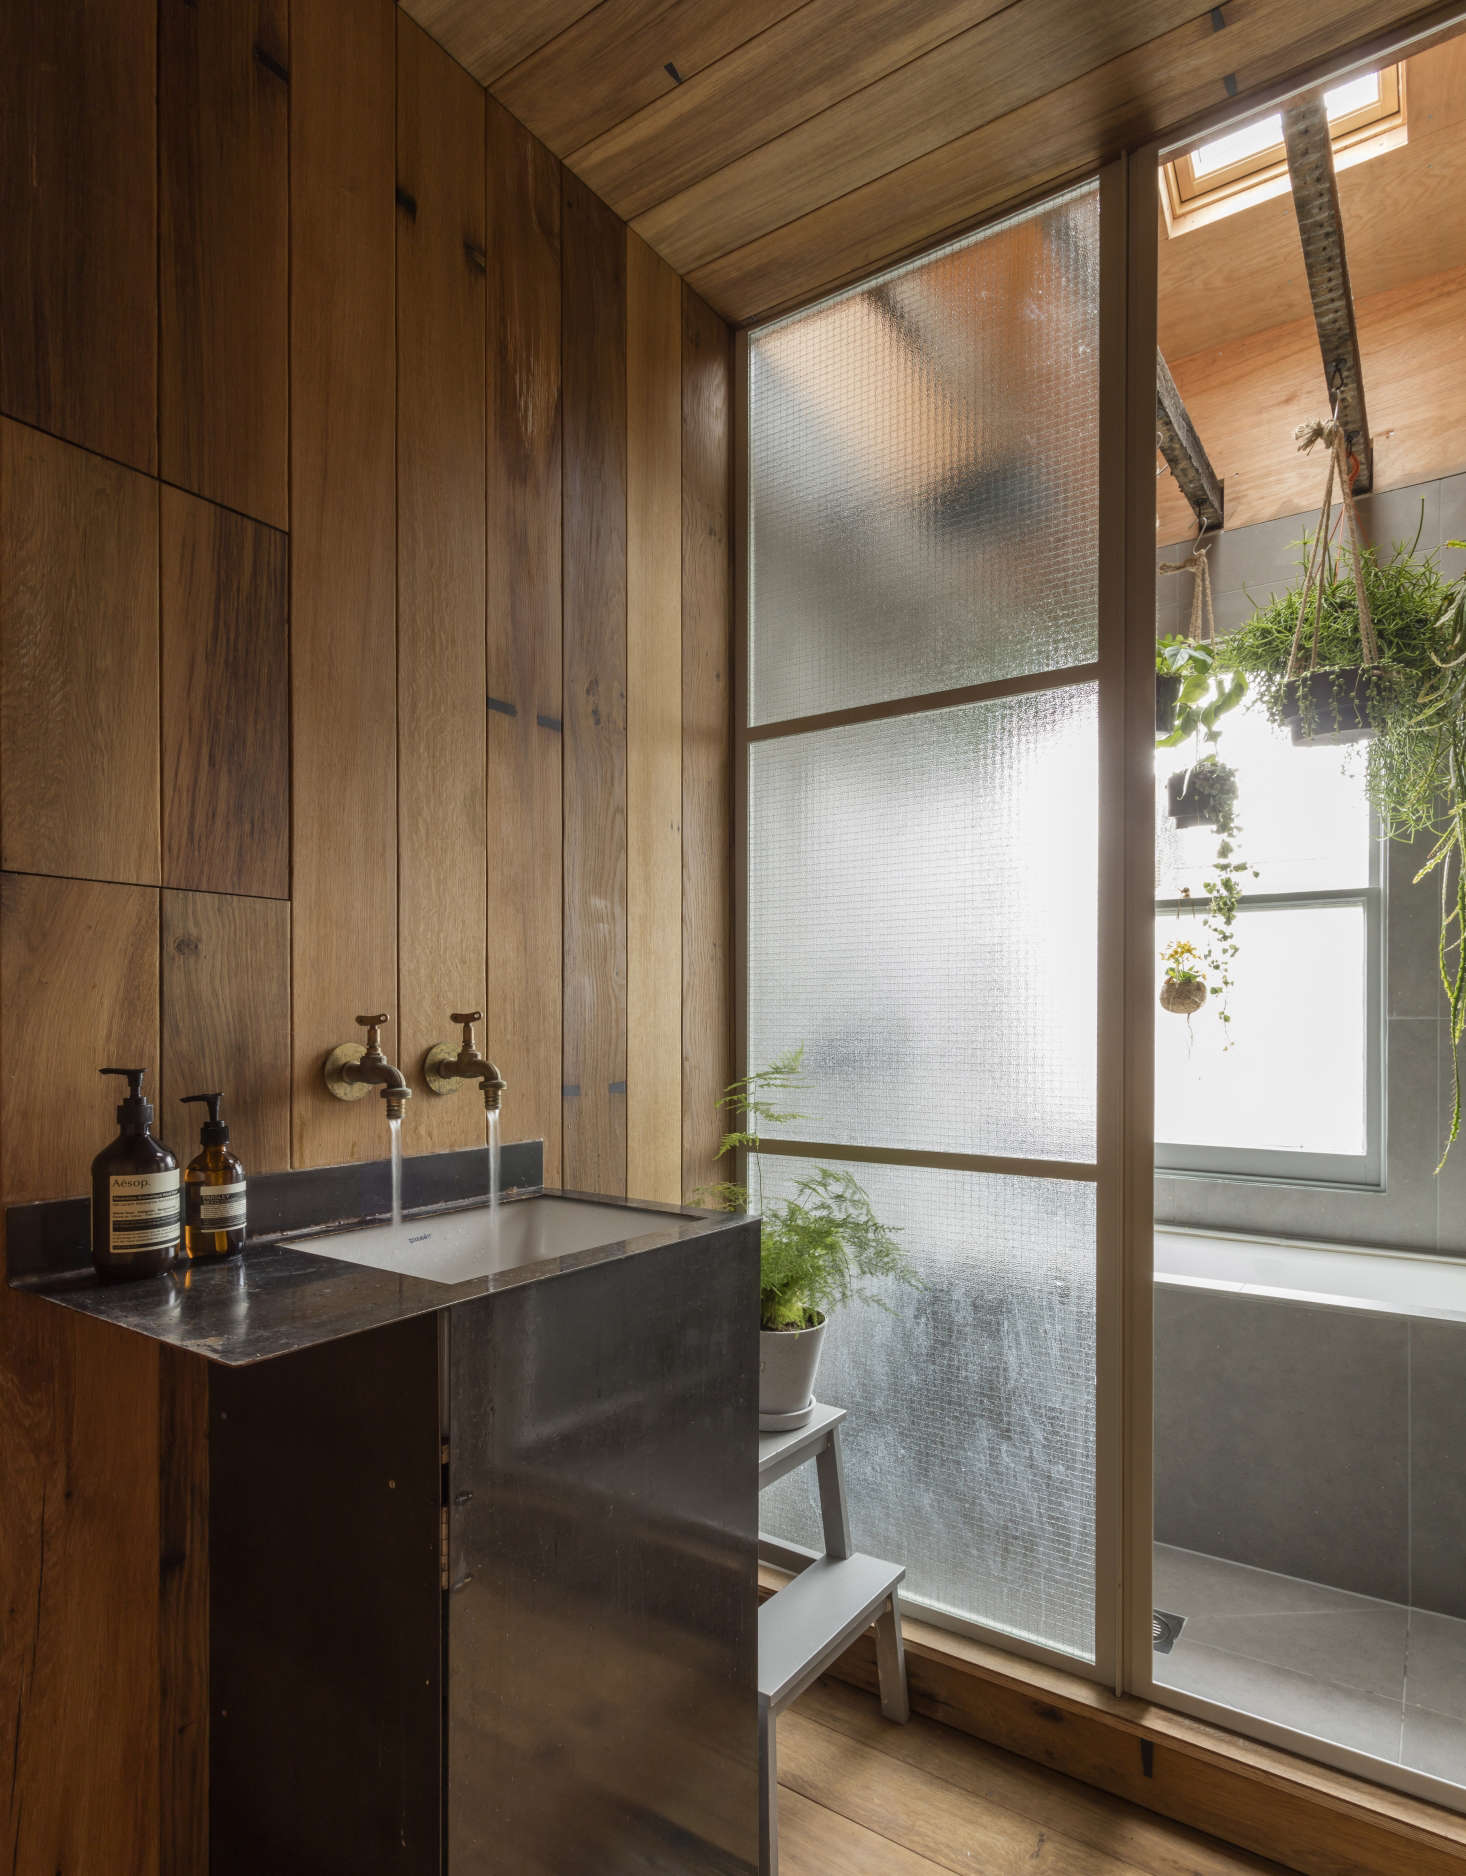 Asian Style Bathroom Decor: A Japanese-style Two-room Bath Filled With Hanging Plants